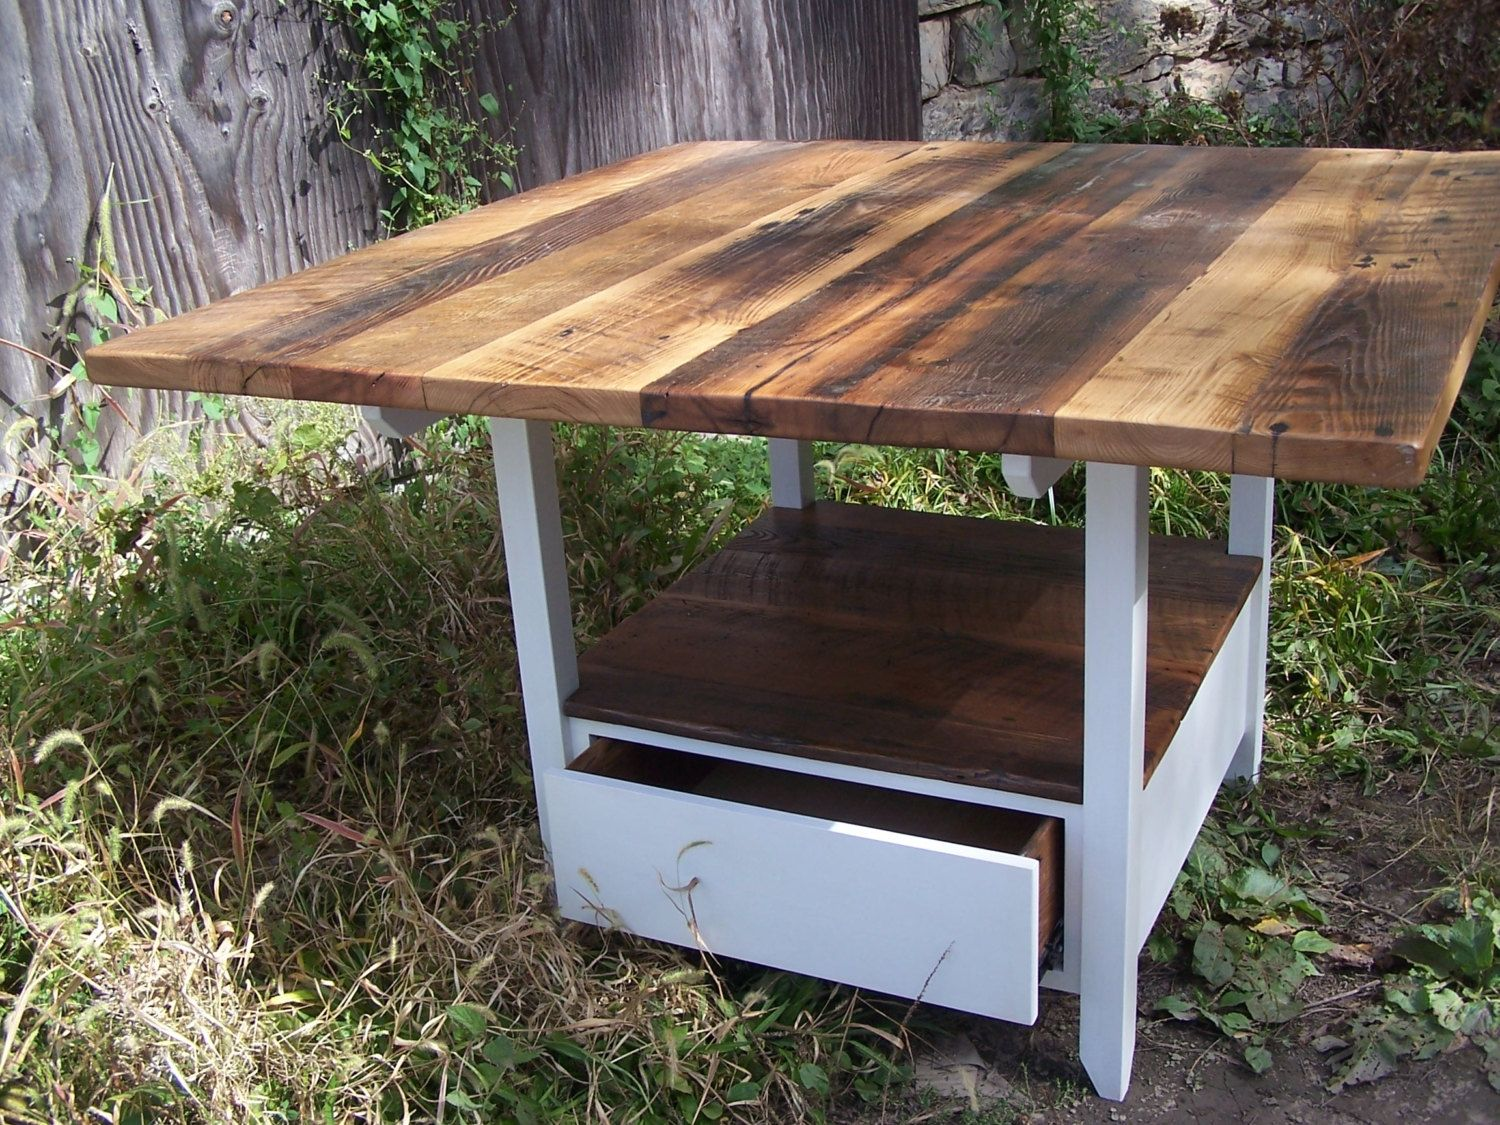 buy a handmade reclaimed wood kitchen table with storage base made to order from the strong. Black Bedroom Furniture Sets. Home Design Ideas